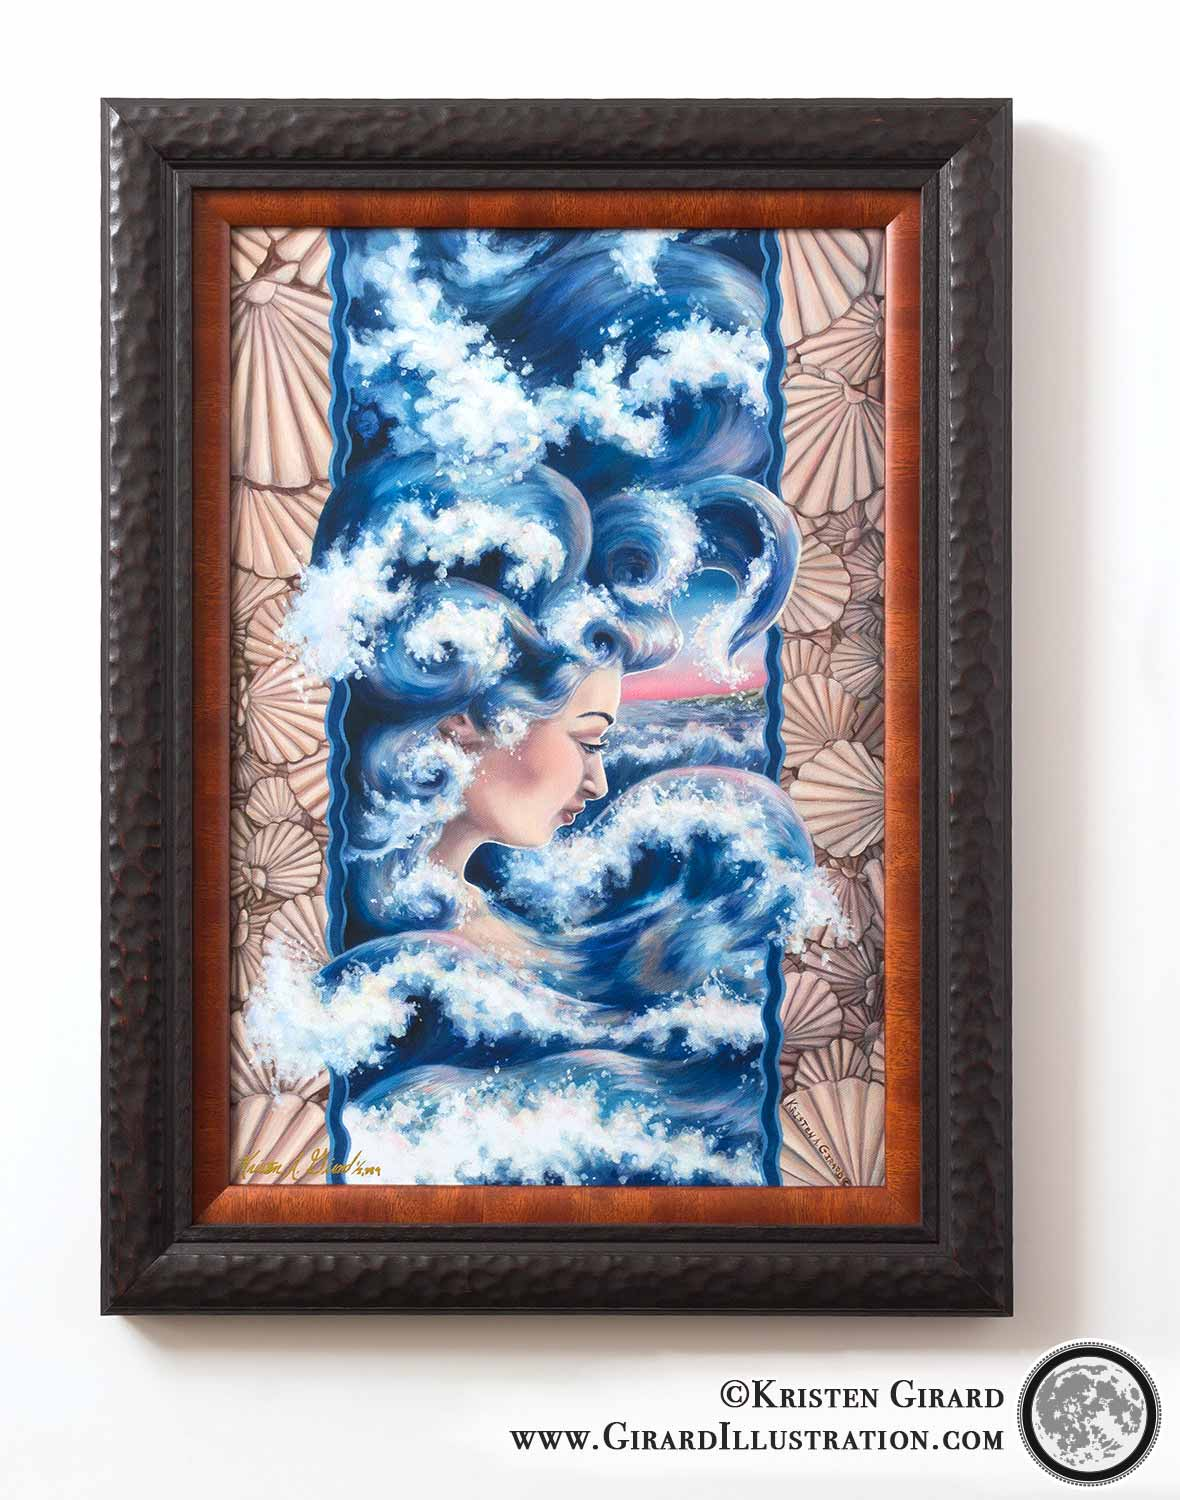 Seashells frame ocean waves that become a goddess of the deep blue waters in this unusually beautiful artwork by artist Kristen Girard. ©